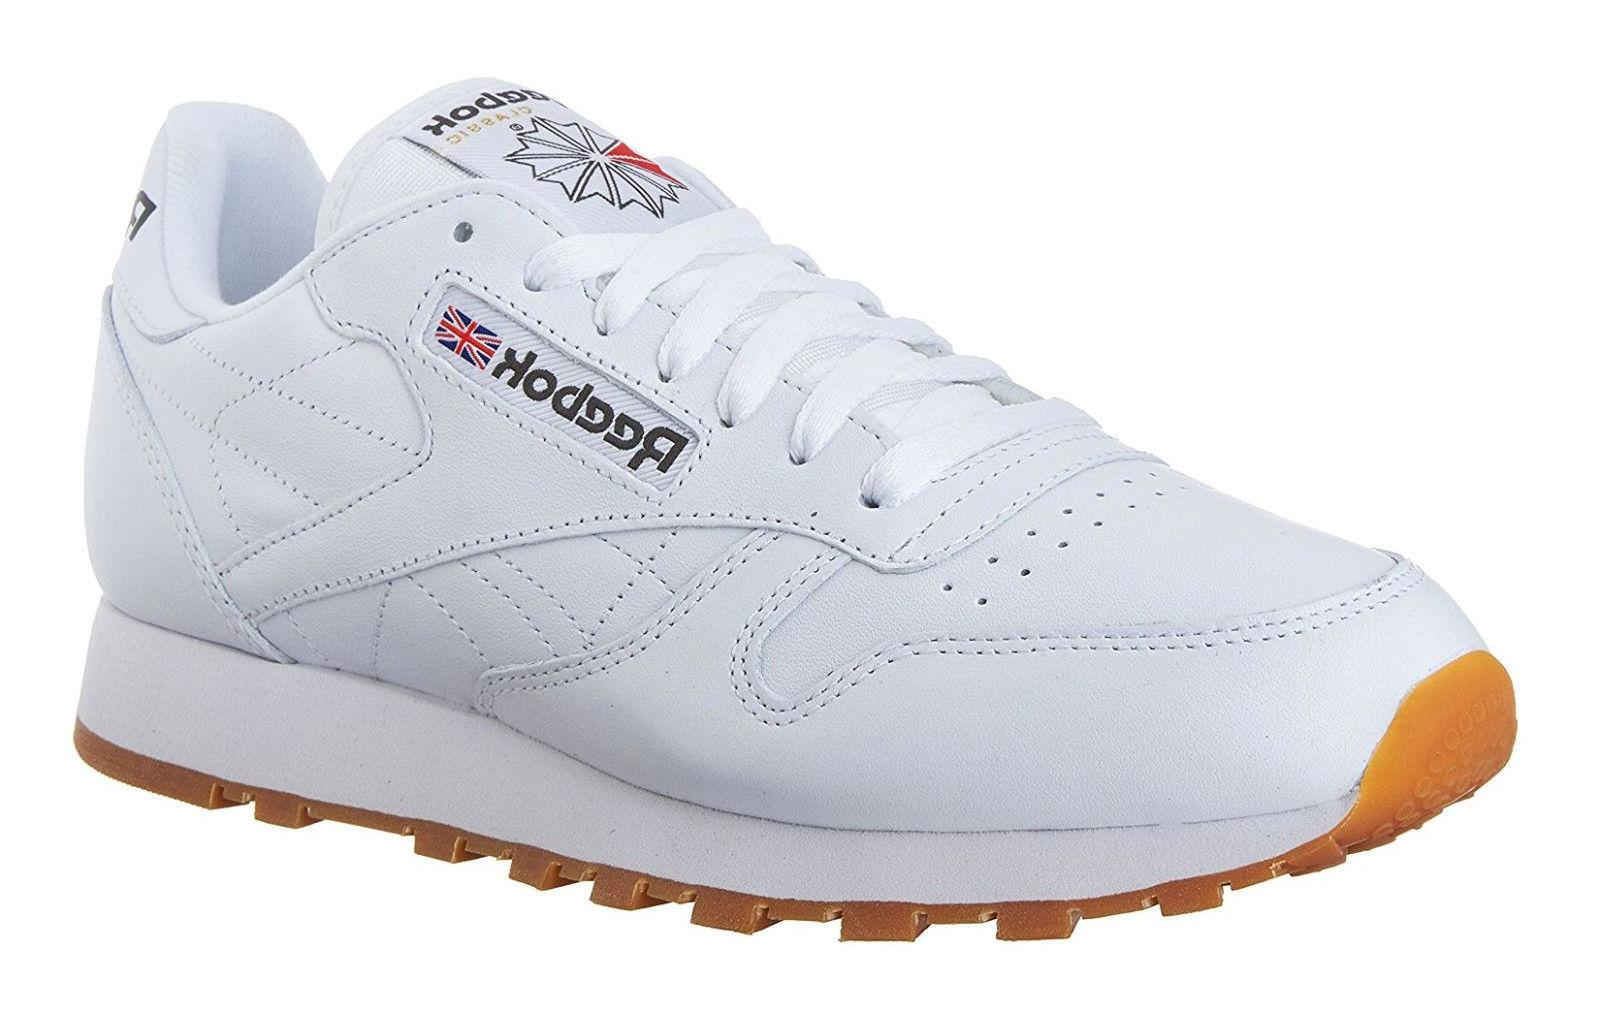 classic leather white gum mens running tennis